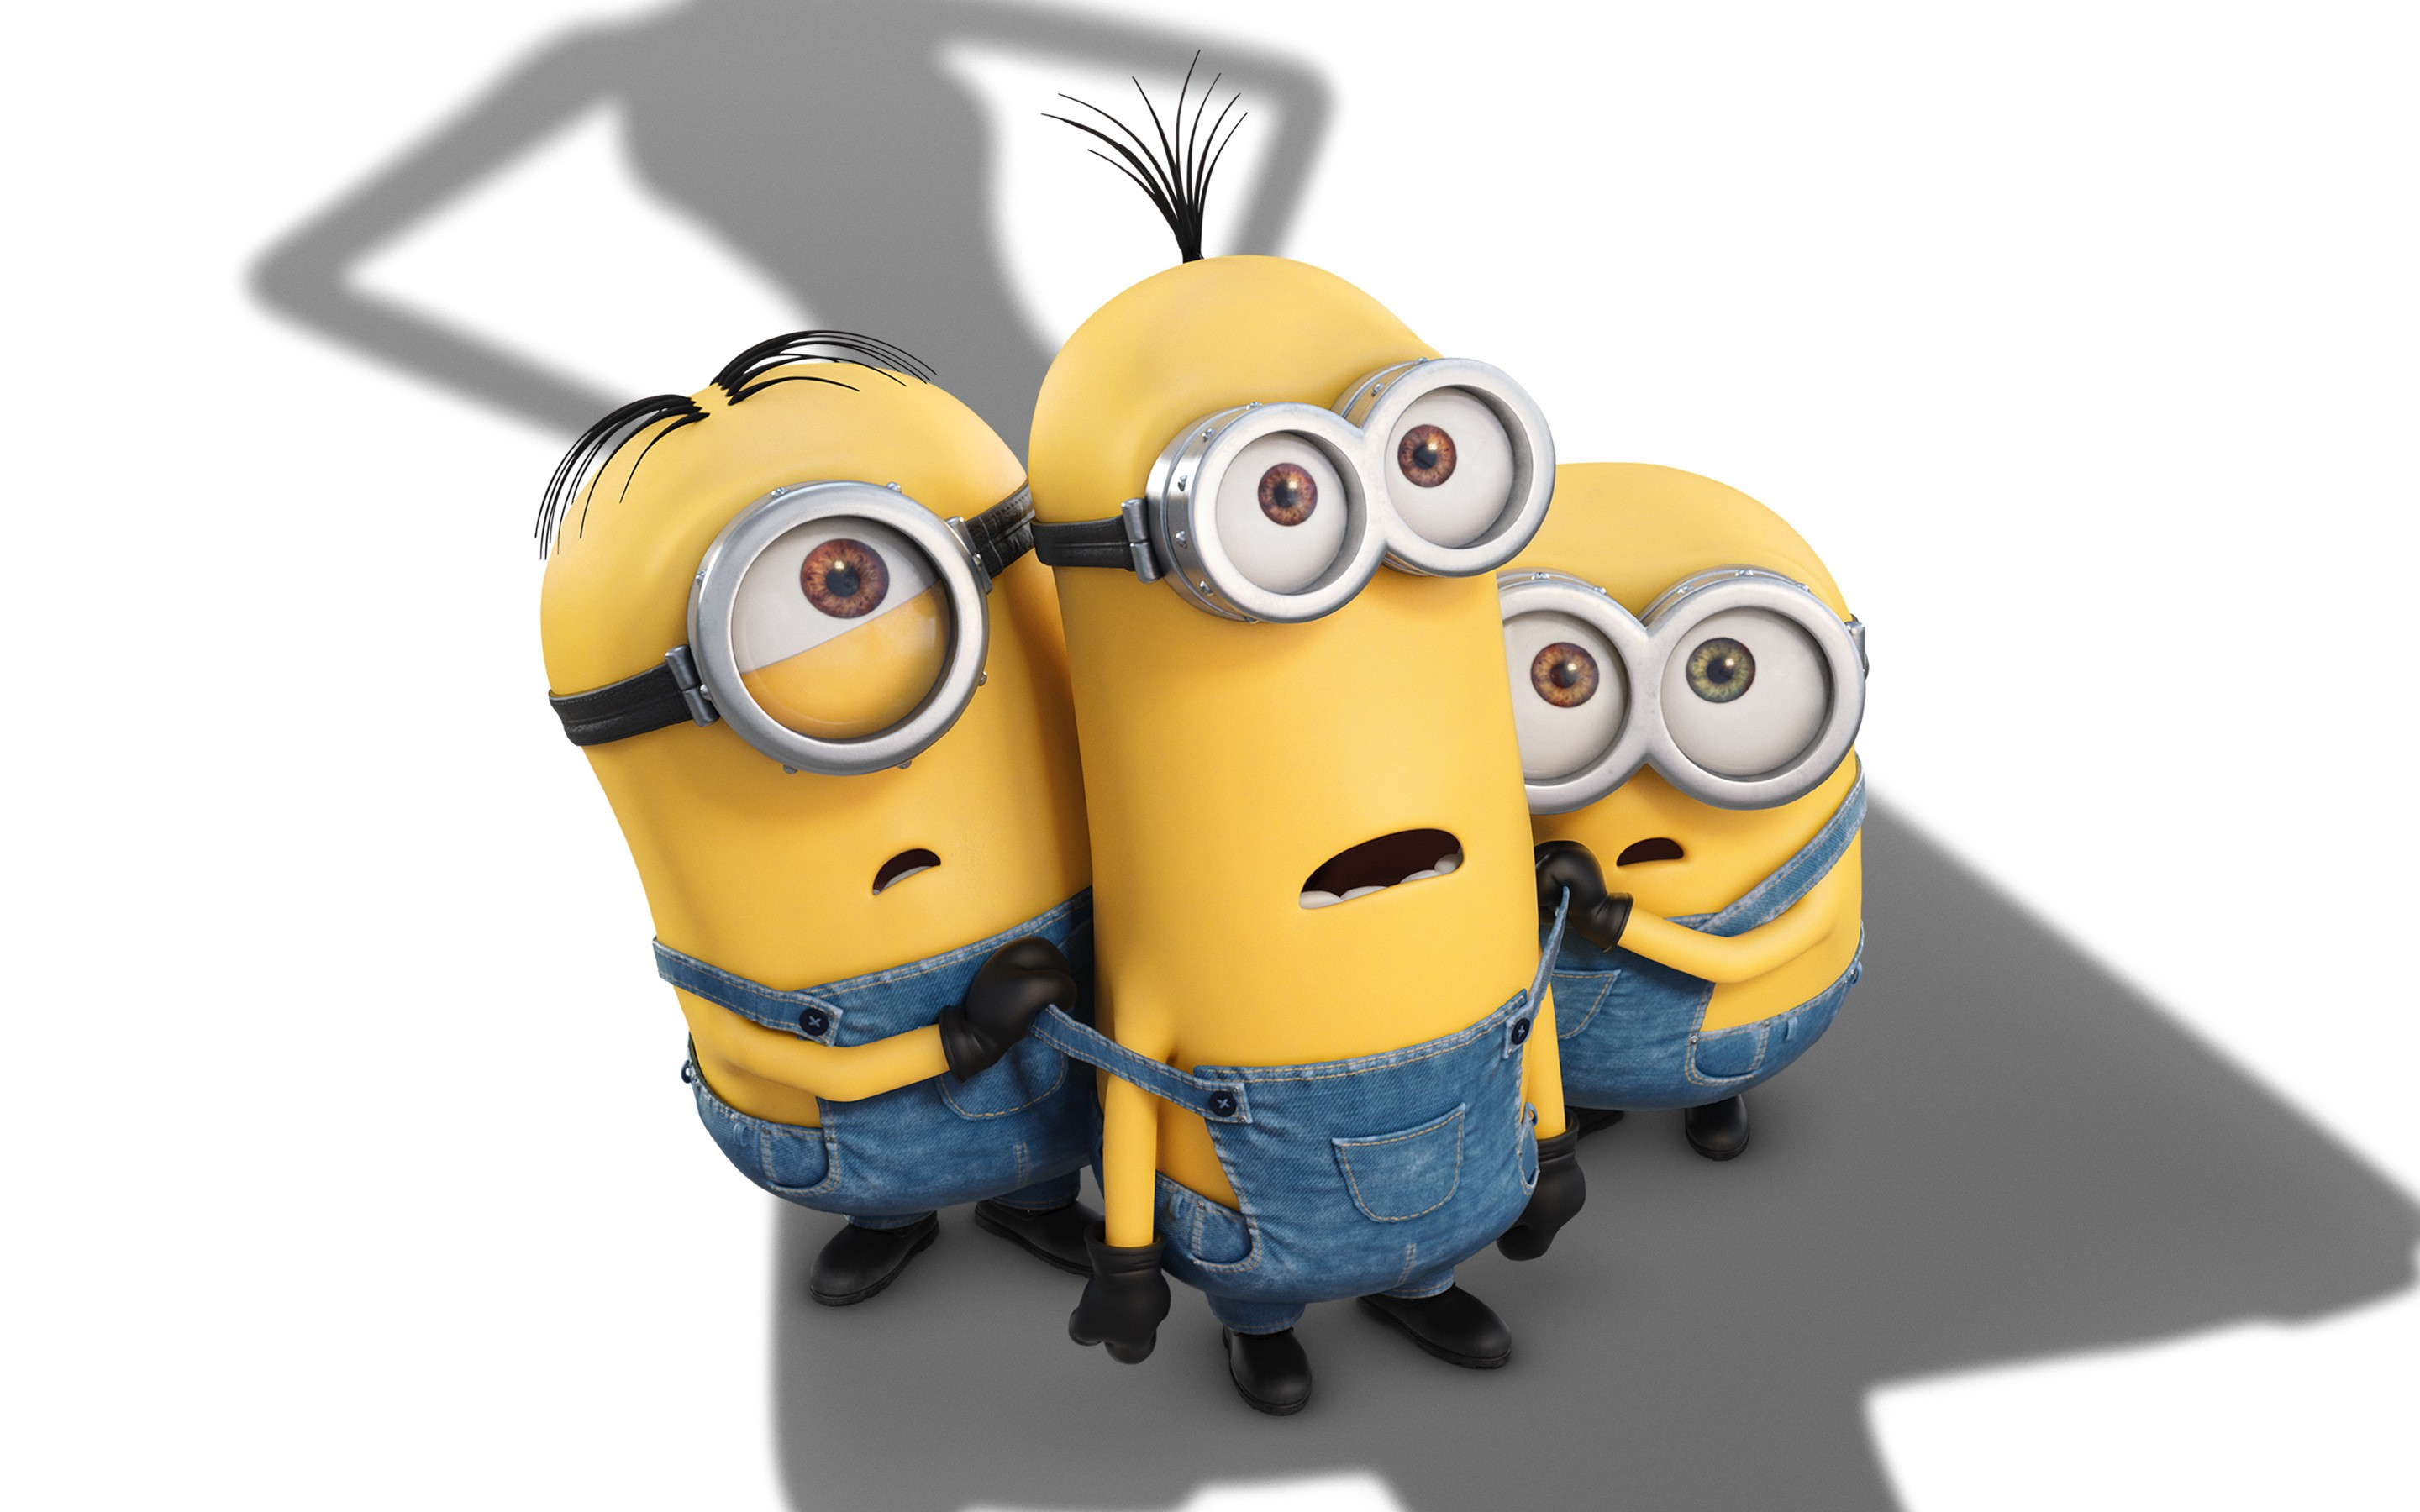 1920x1080 cute minions laptop full hd 1080p hd 4k wallpapers, images